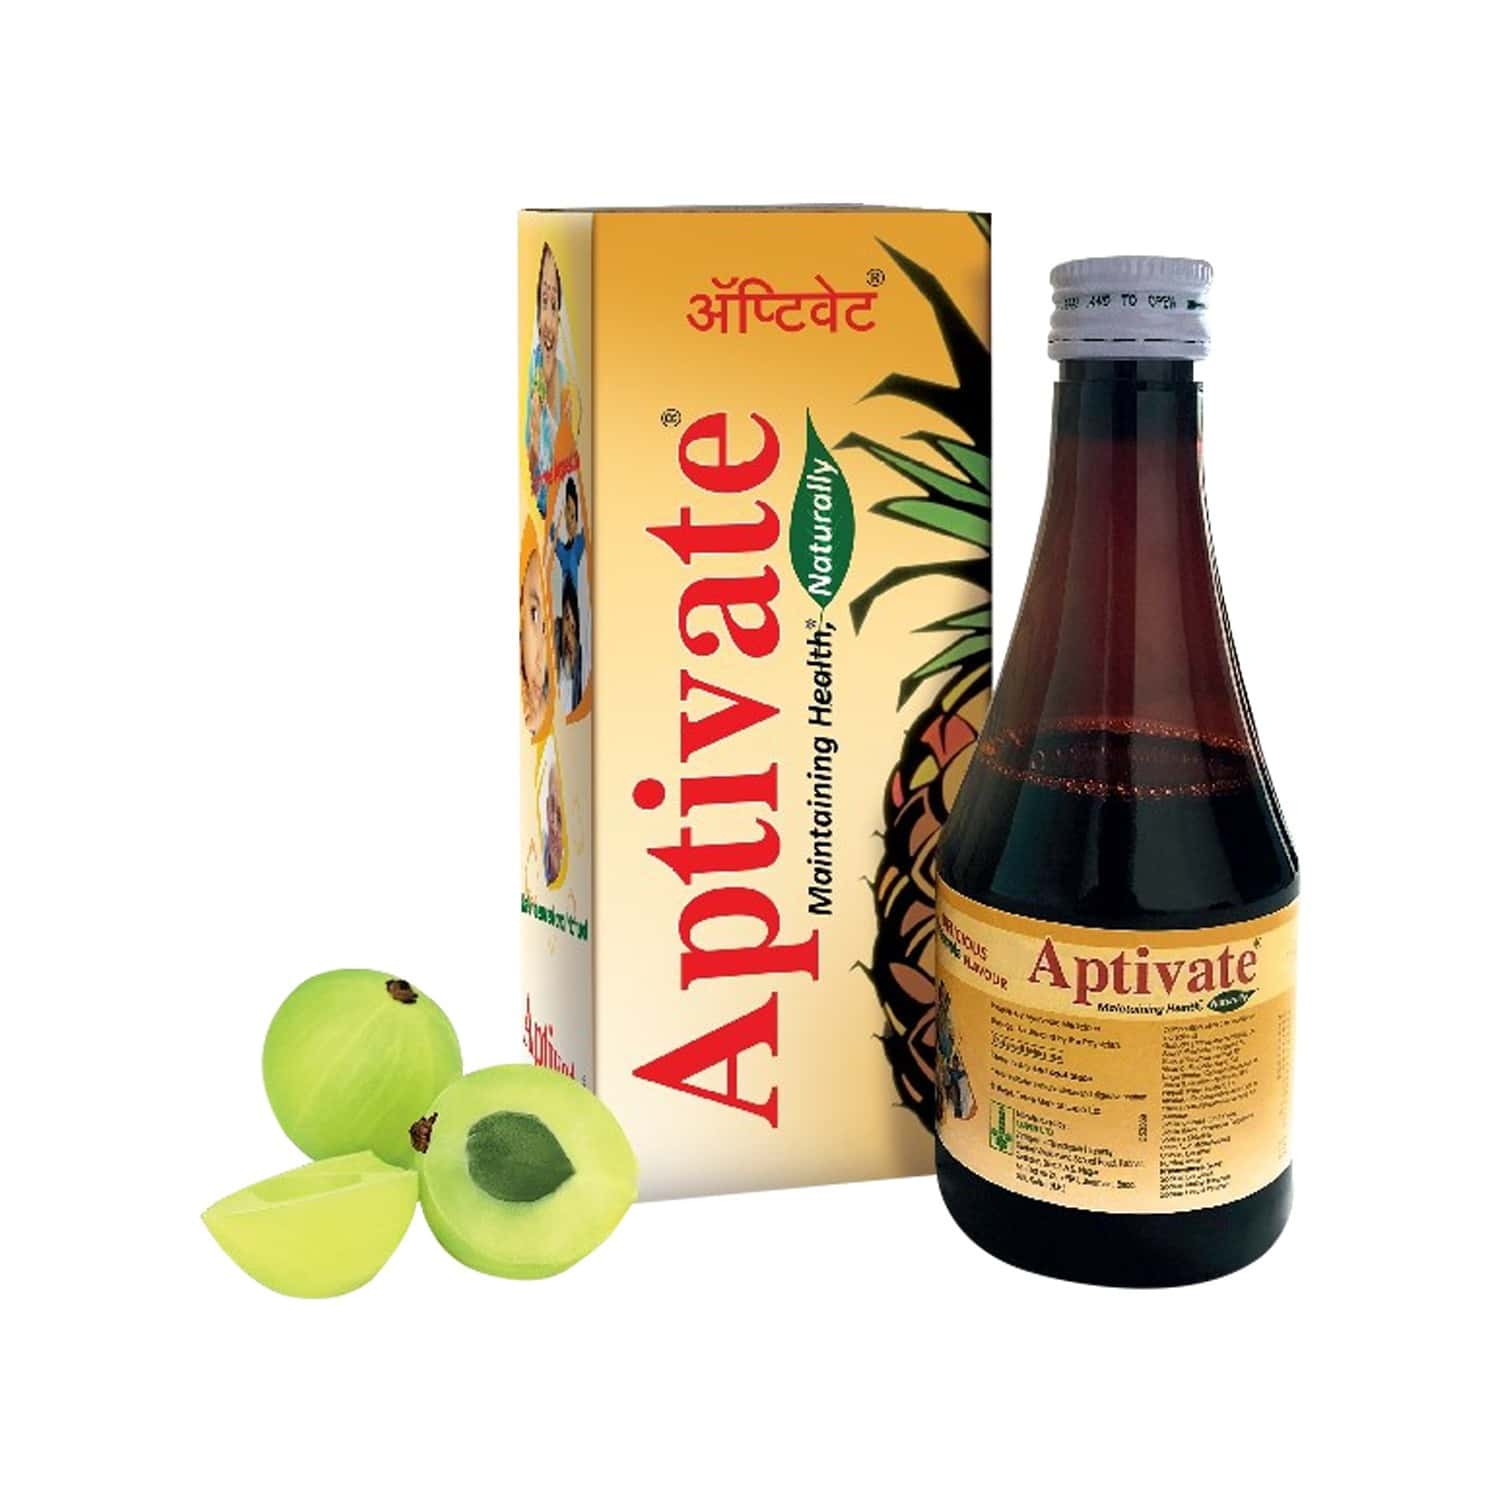 Buy Aptivate Pineaplle Appetite Stimulating Syrup Bottle Of 450 Ml Online Get Upto 60 Off At Pharmeasy